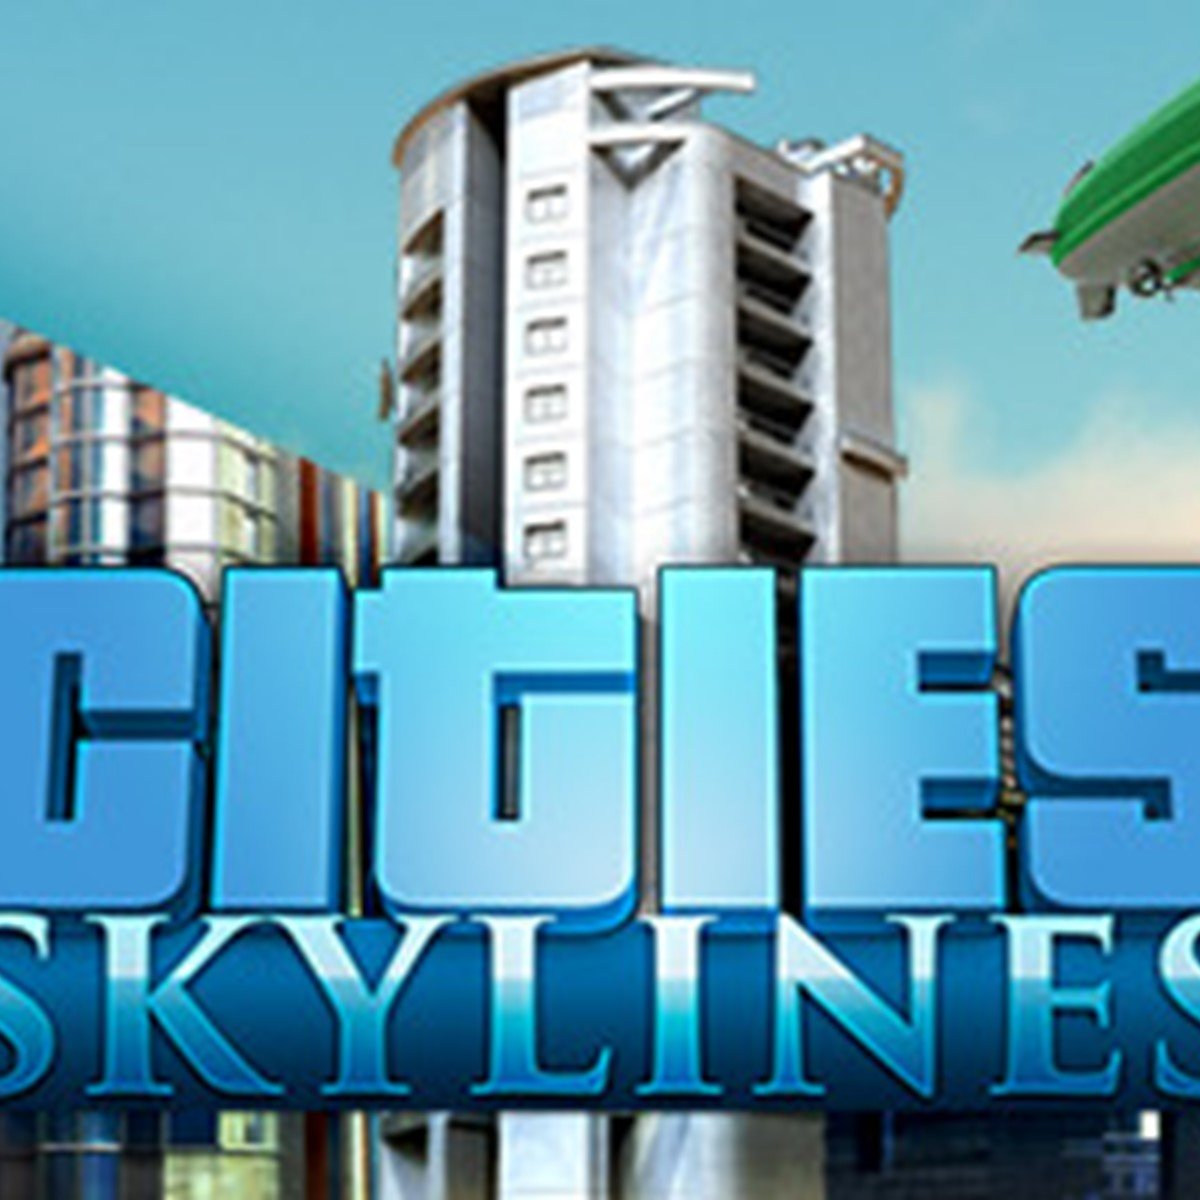 Cities: Skylines (series) Alternatives And Similar Games